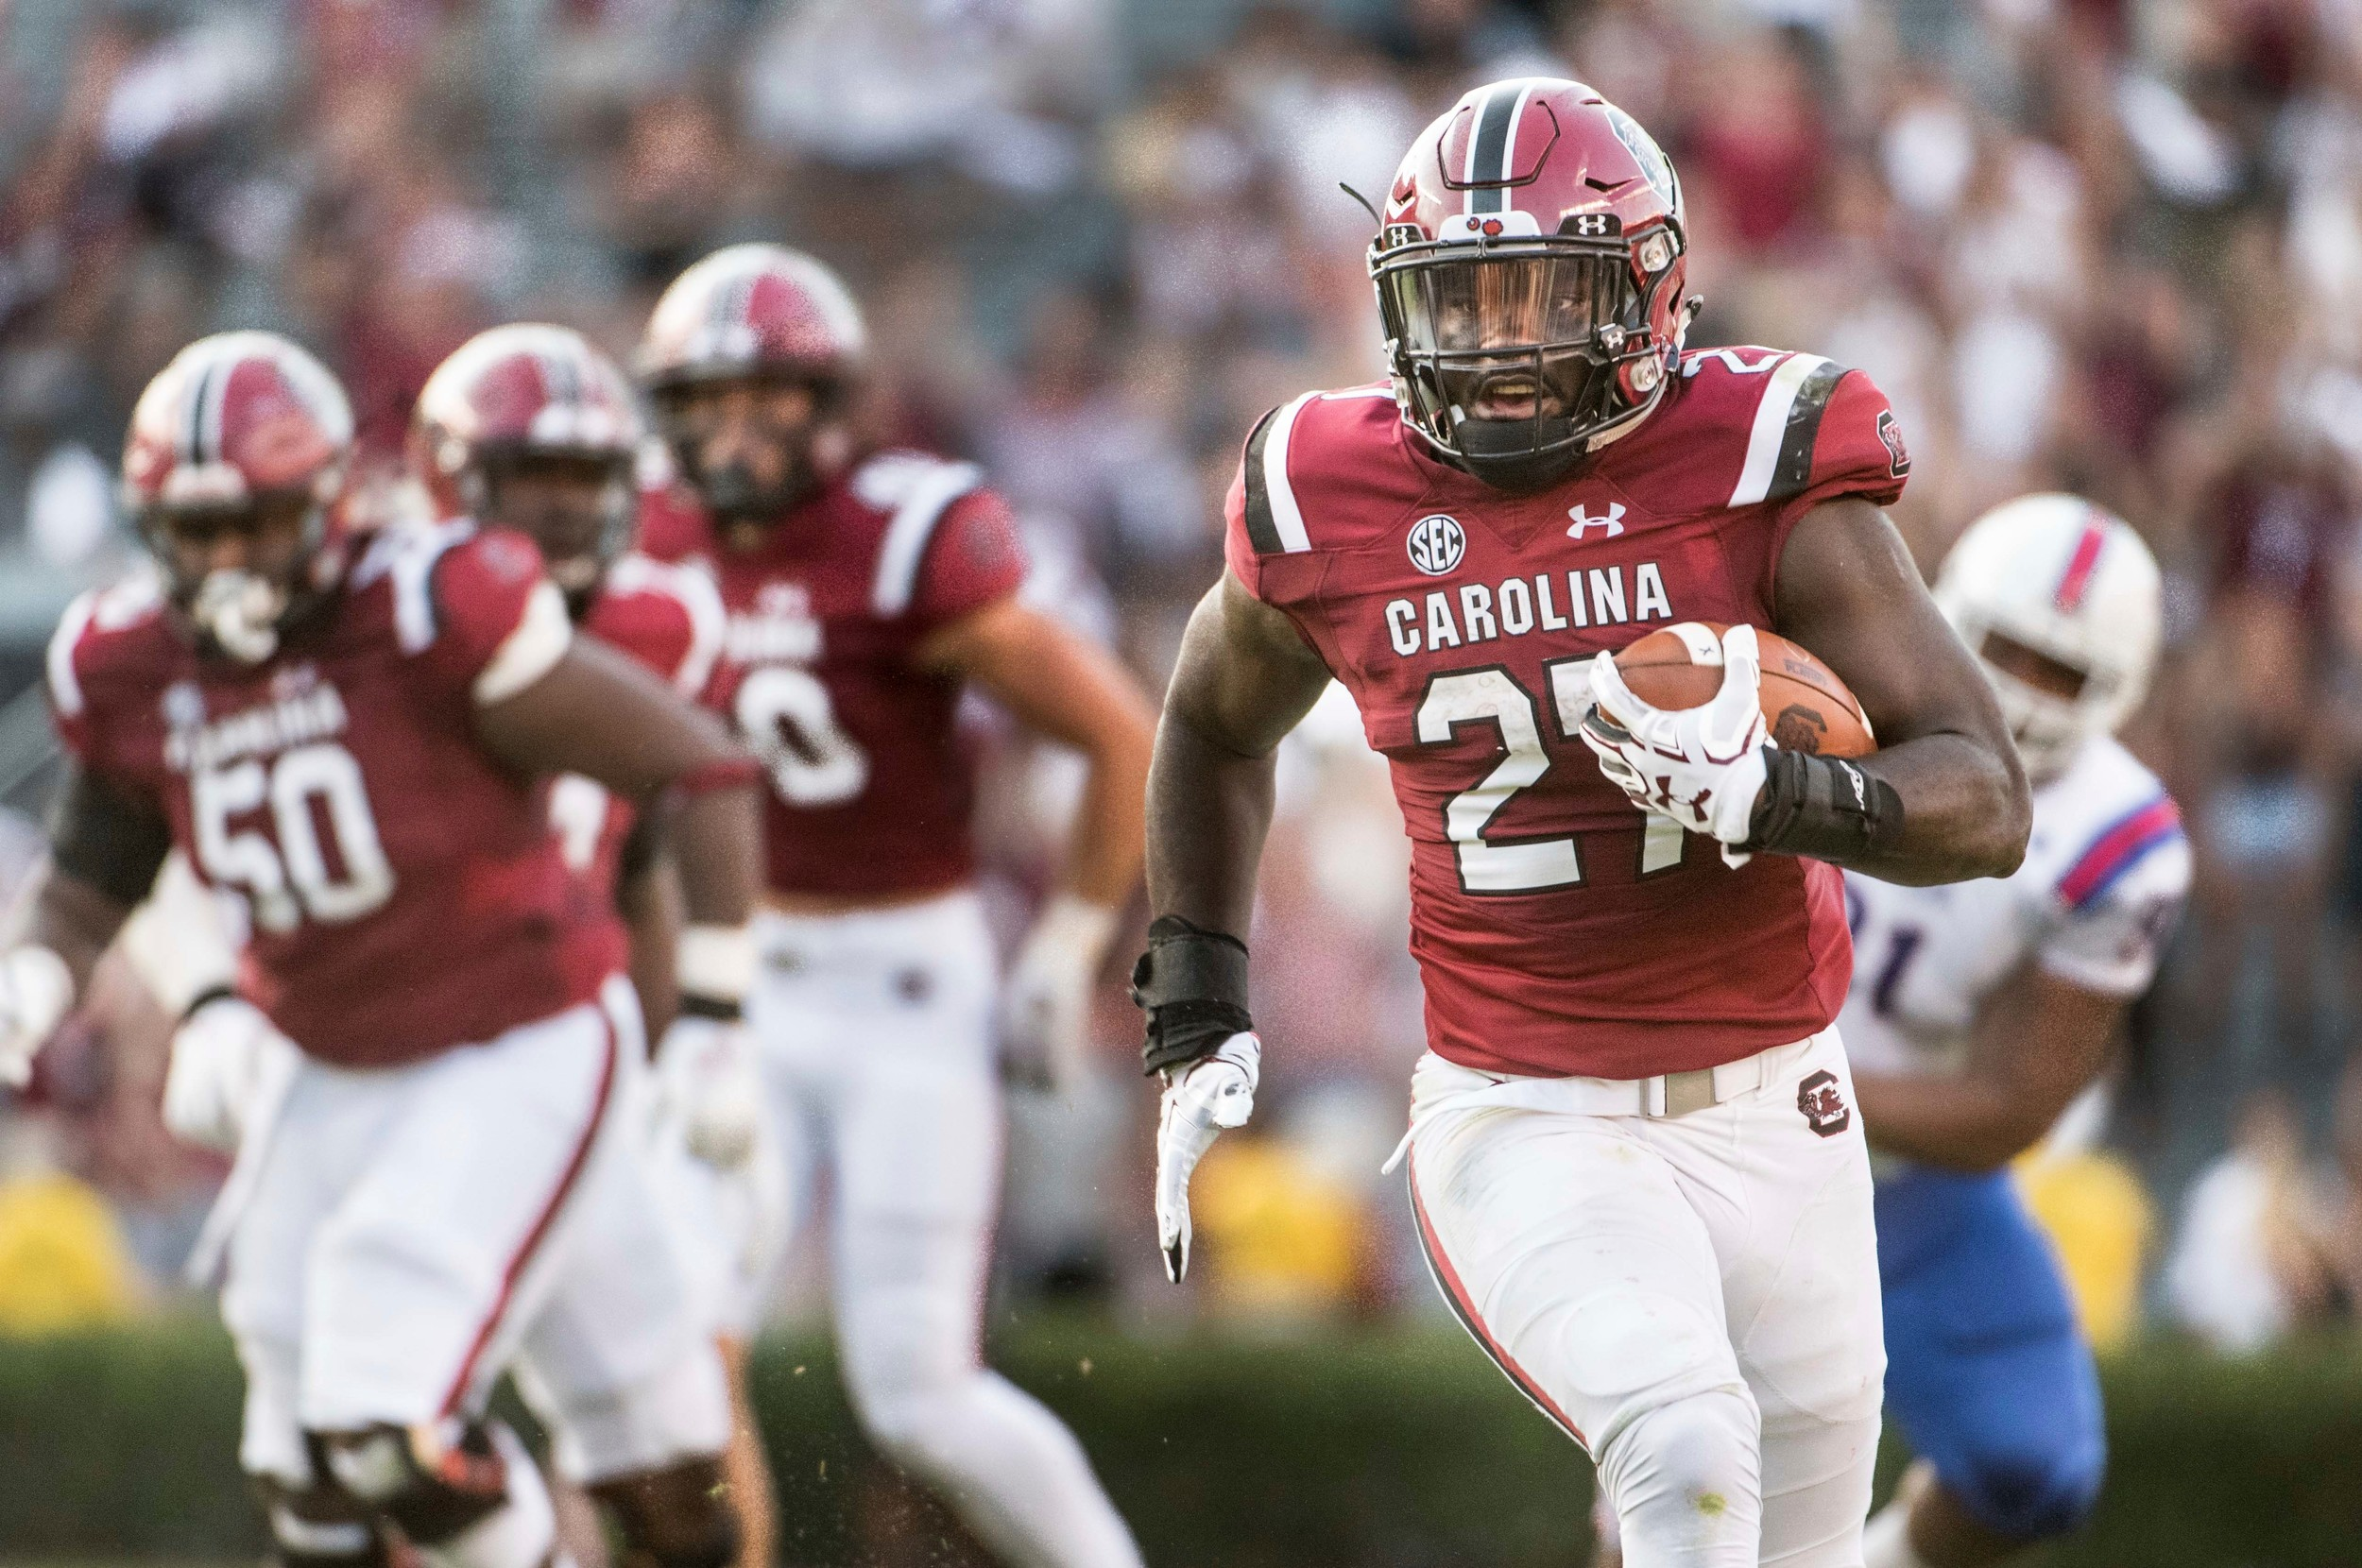 The Associated Press  South Carolina running back Ty'Son Williams (27) heads to the end zone on a 35-yard touchdown during the Gamecocks' 17-16 victory over Louisiana Tech on Saturday in Columbia. Williams rushed for 95 yards on 13 carries in his first collegiate start.  )